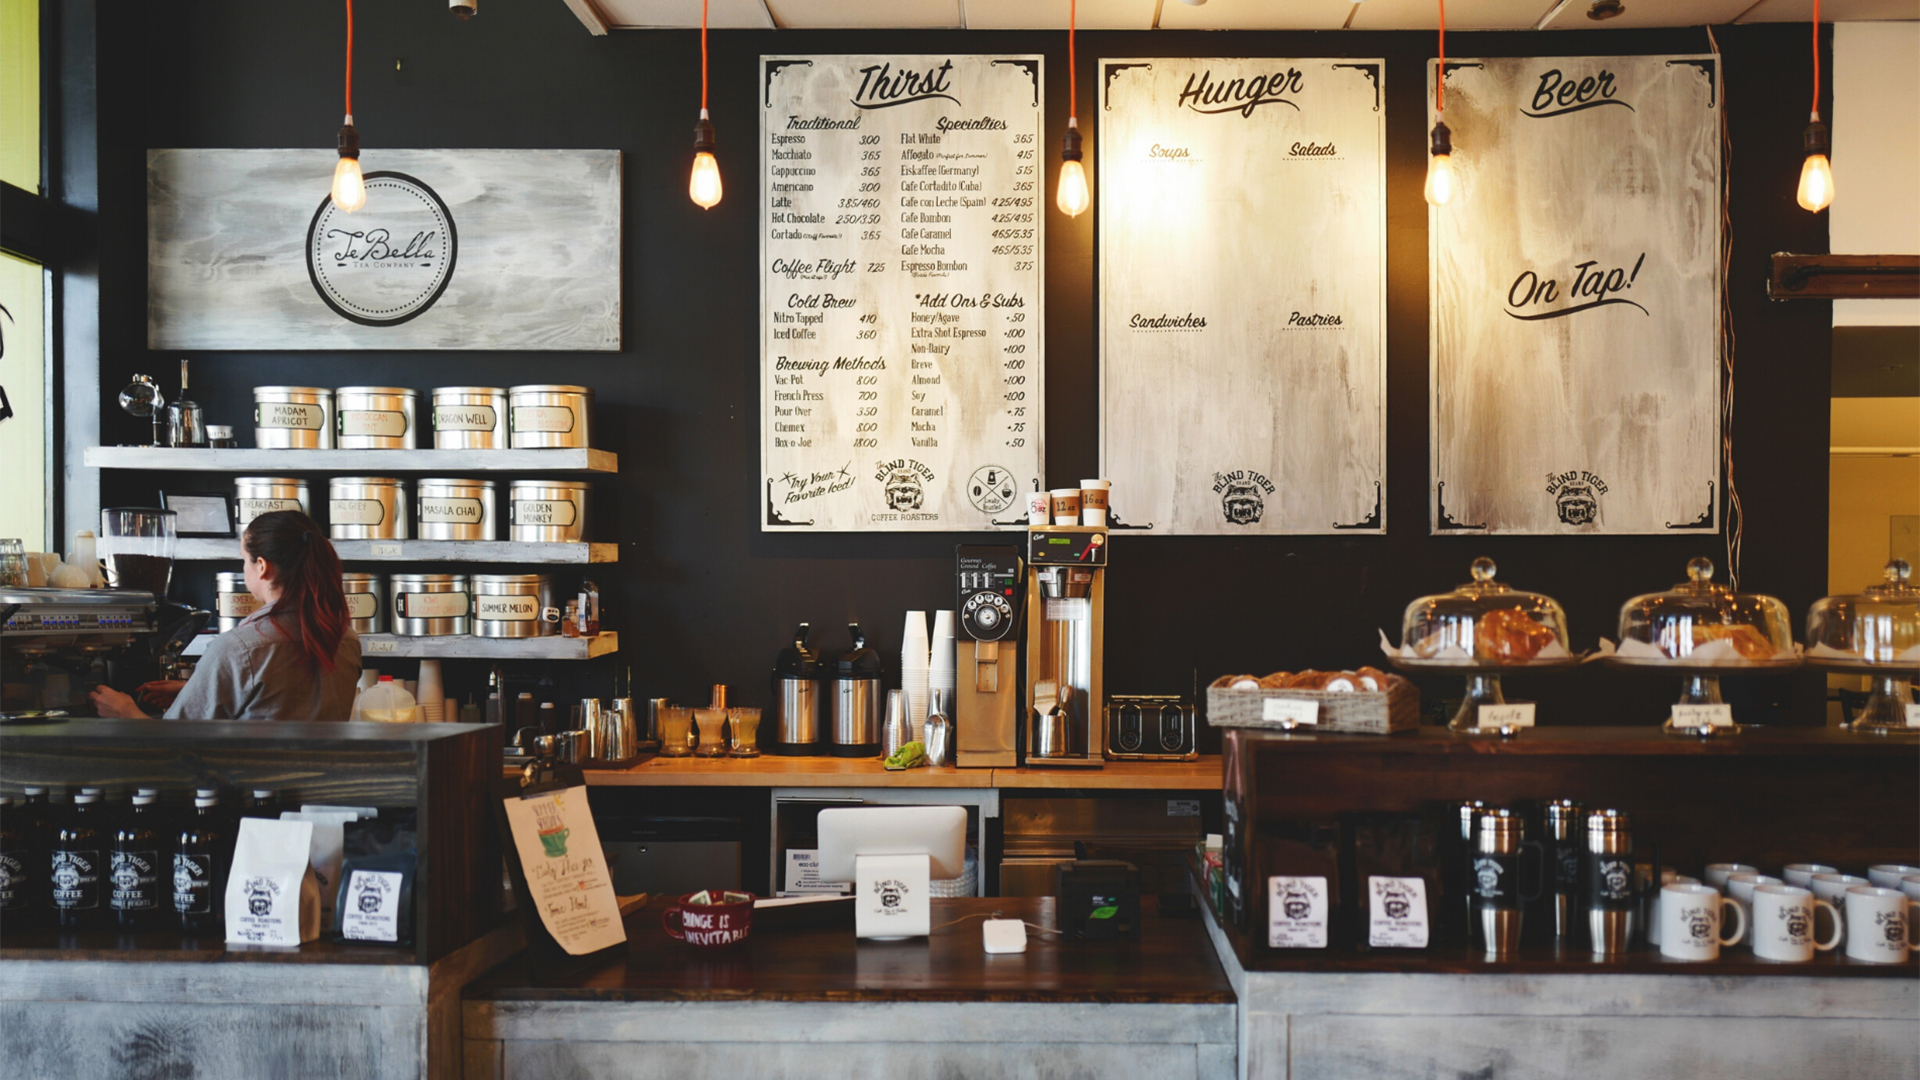 Coffee shop. Virtual background to use on Zoom, Microsoft Teams, Skype, Google Meet, WebEx or any other compatible app.